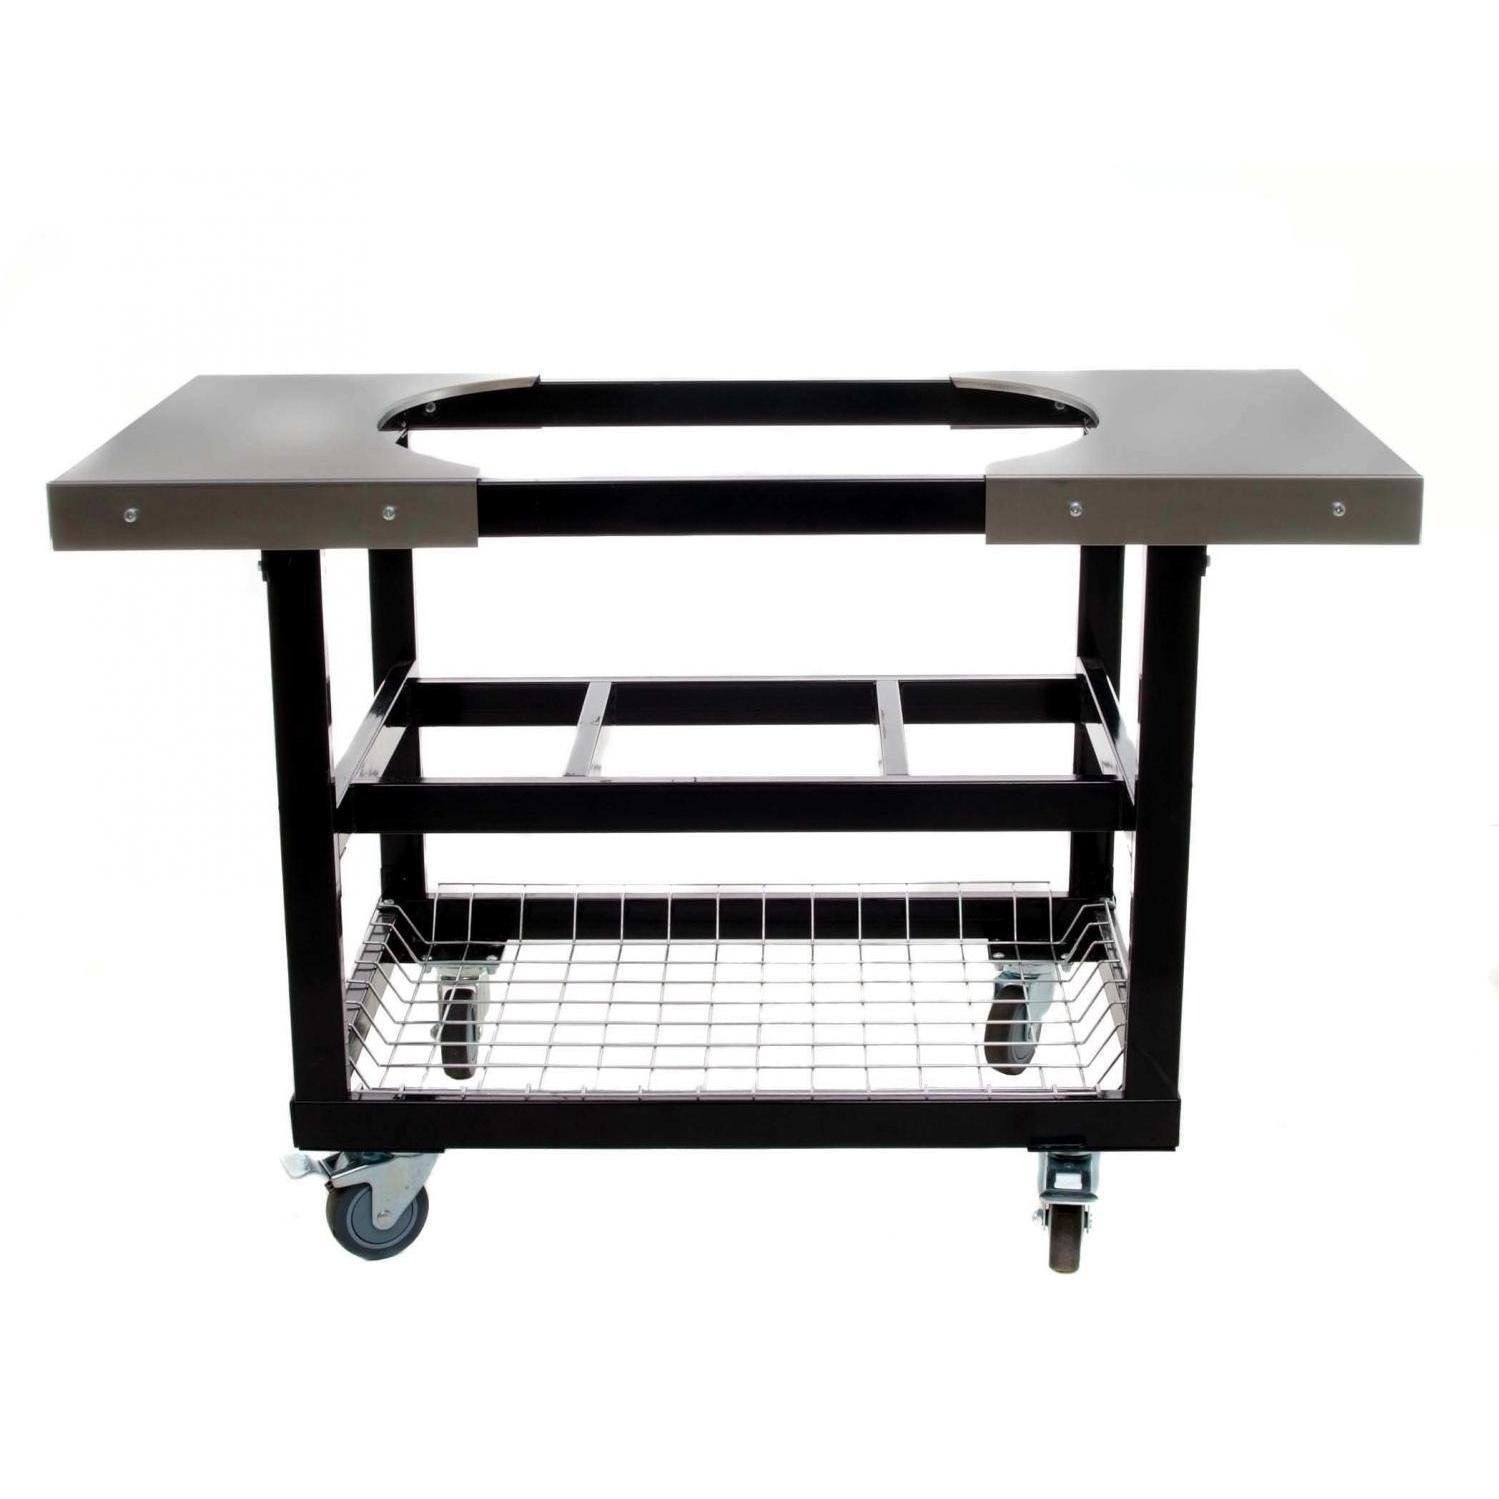 Amazon.com : Primo 310 Cart With Basket And Side Tables With Casters For  Primo Oval XL Grill : Outdoor Grill Carts : Garden U0026 Outdoor